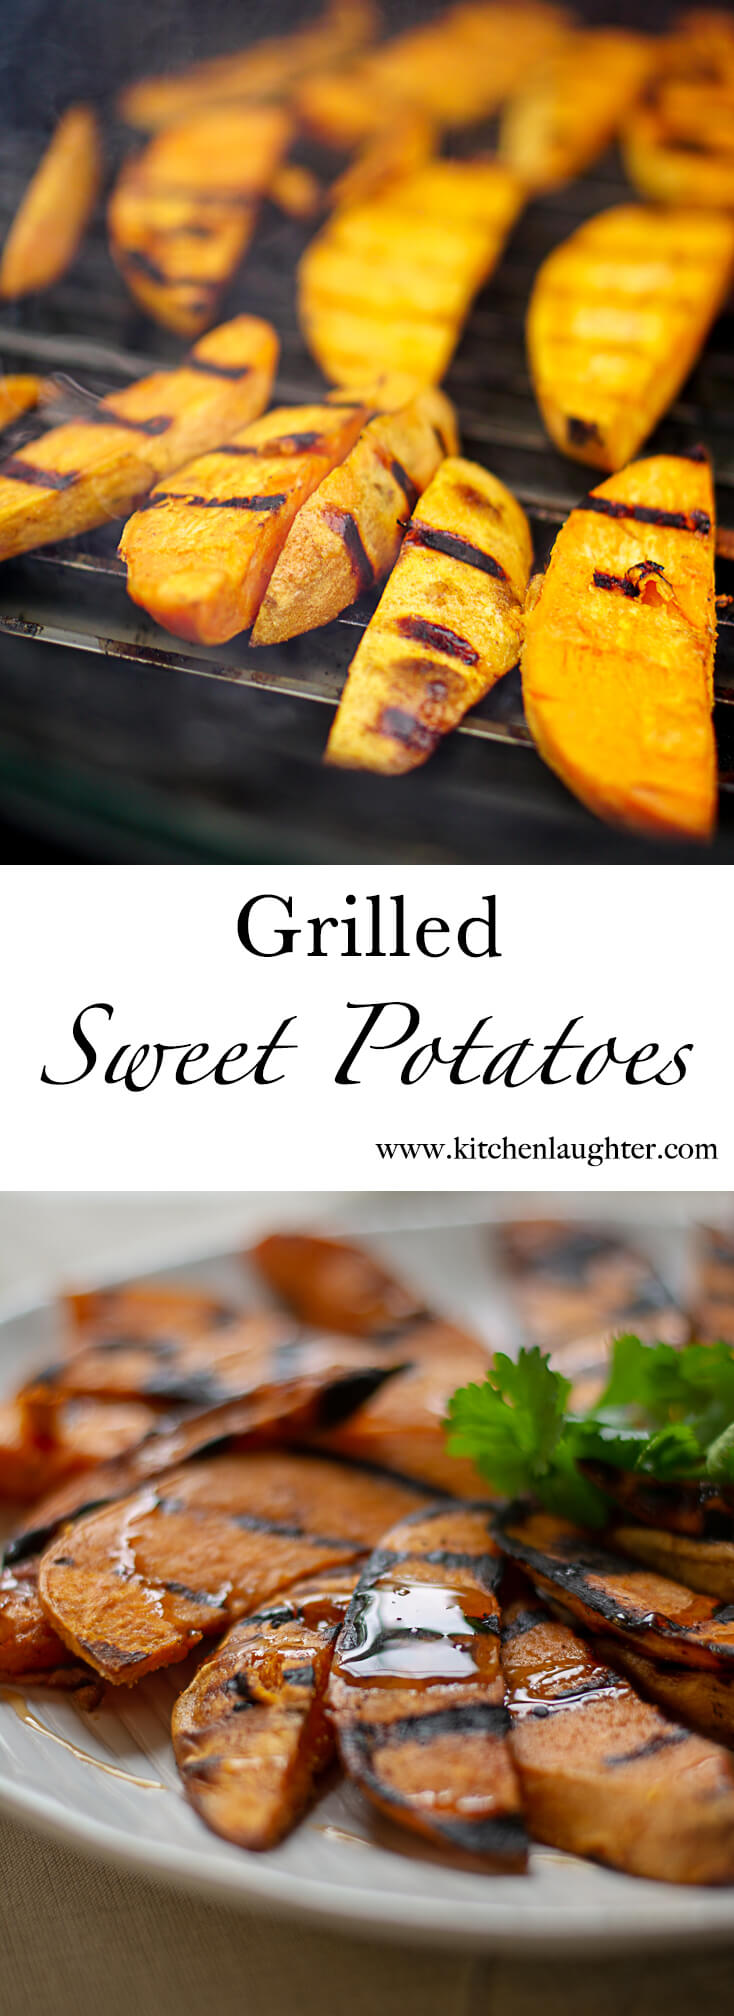 Grilled Sweet Potatoes with Honey #Grilling #SweetPotato #Honey #BGE #BigGreenEgg #GrilledVeggie #vegetable